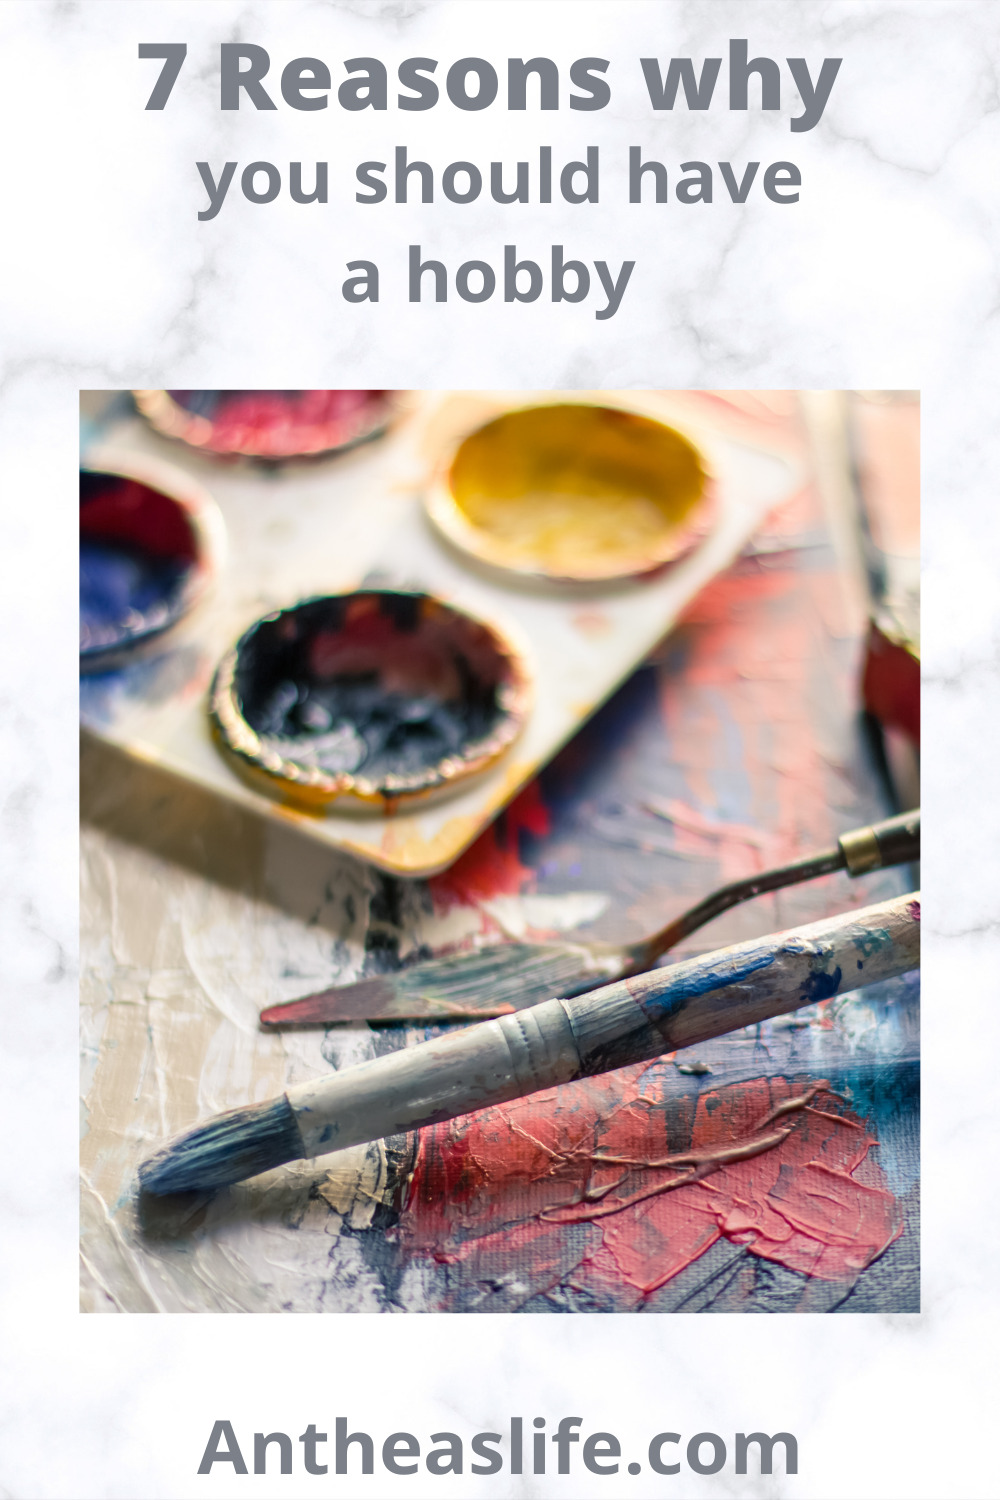 7-reasons-why-you-should-have-a-hobby